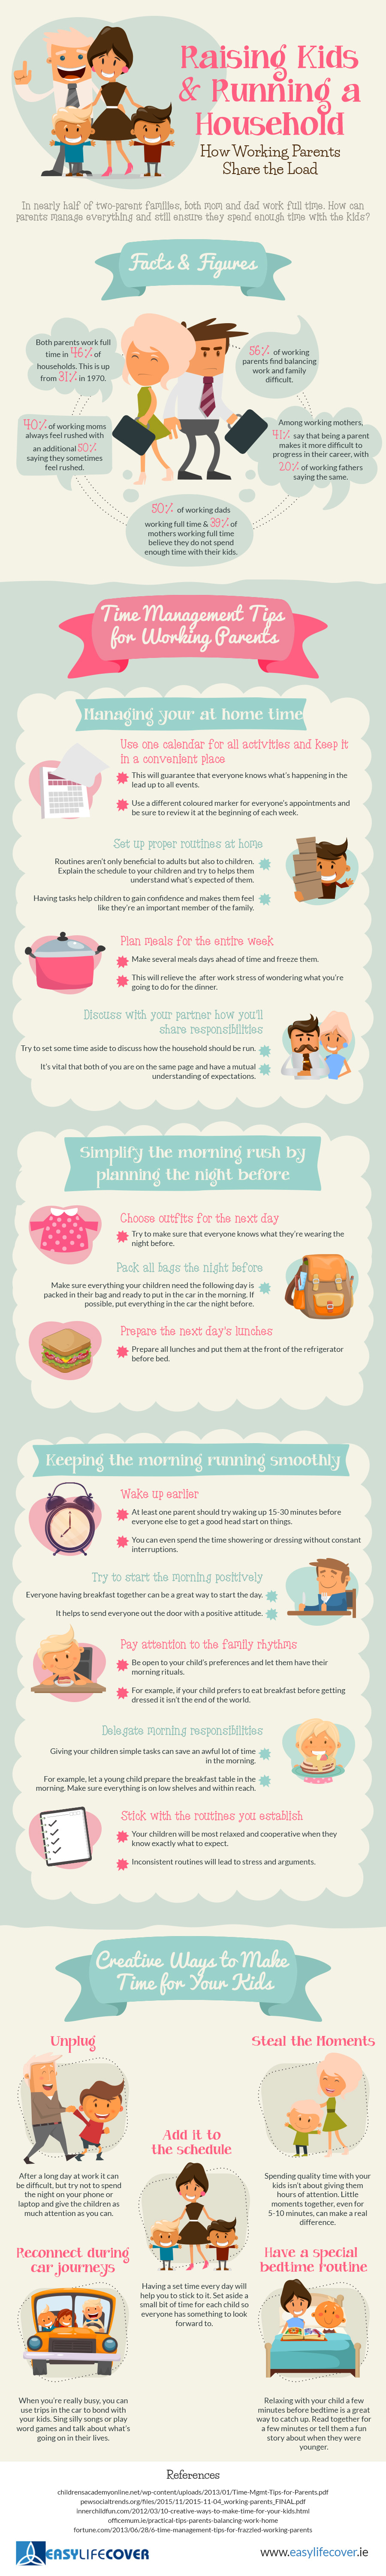 Raising Kids & Running a Household Infographic